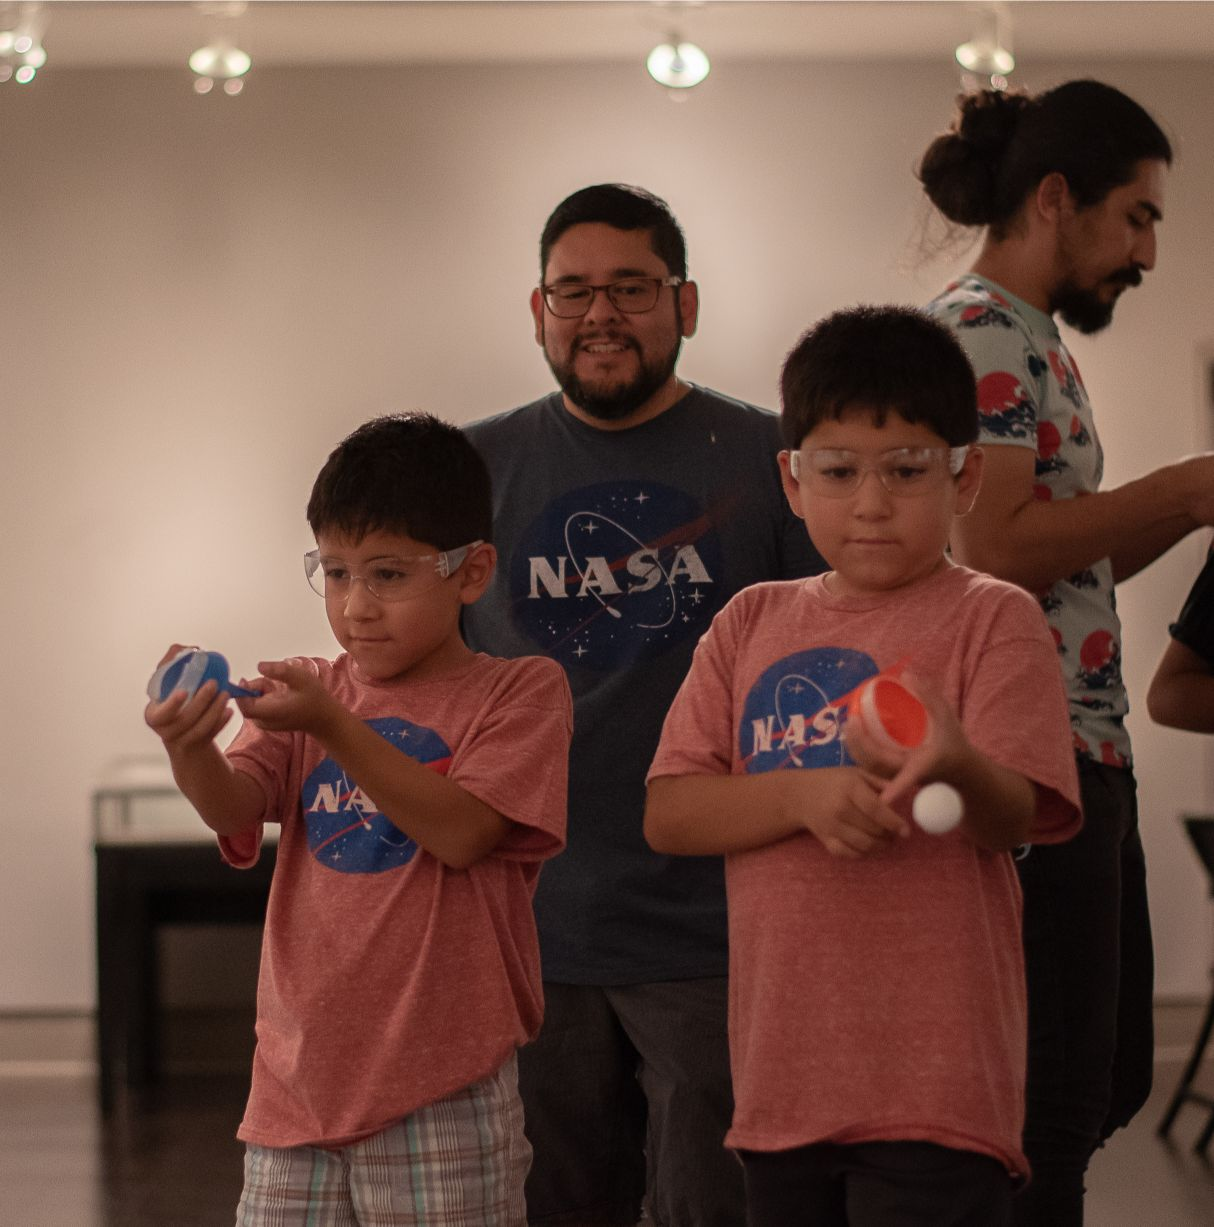 Children learn about different skills necessary for space exploration through the Inights Science Museum's at the 50th anniversary of the Apollo 11 Moon Landing celebration at UTEP.